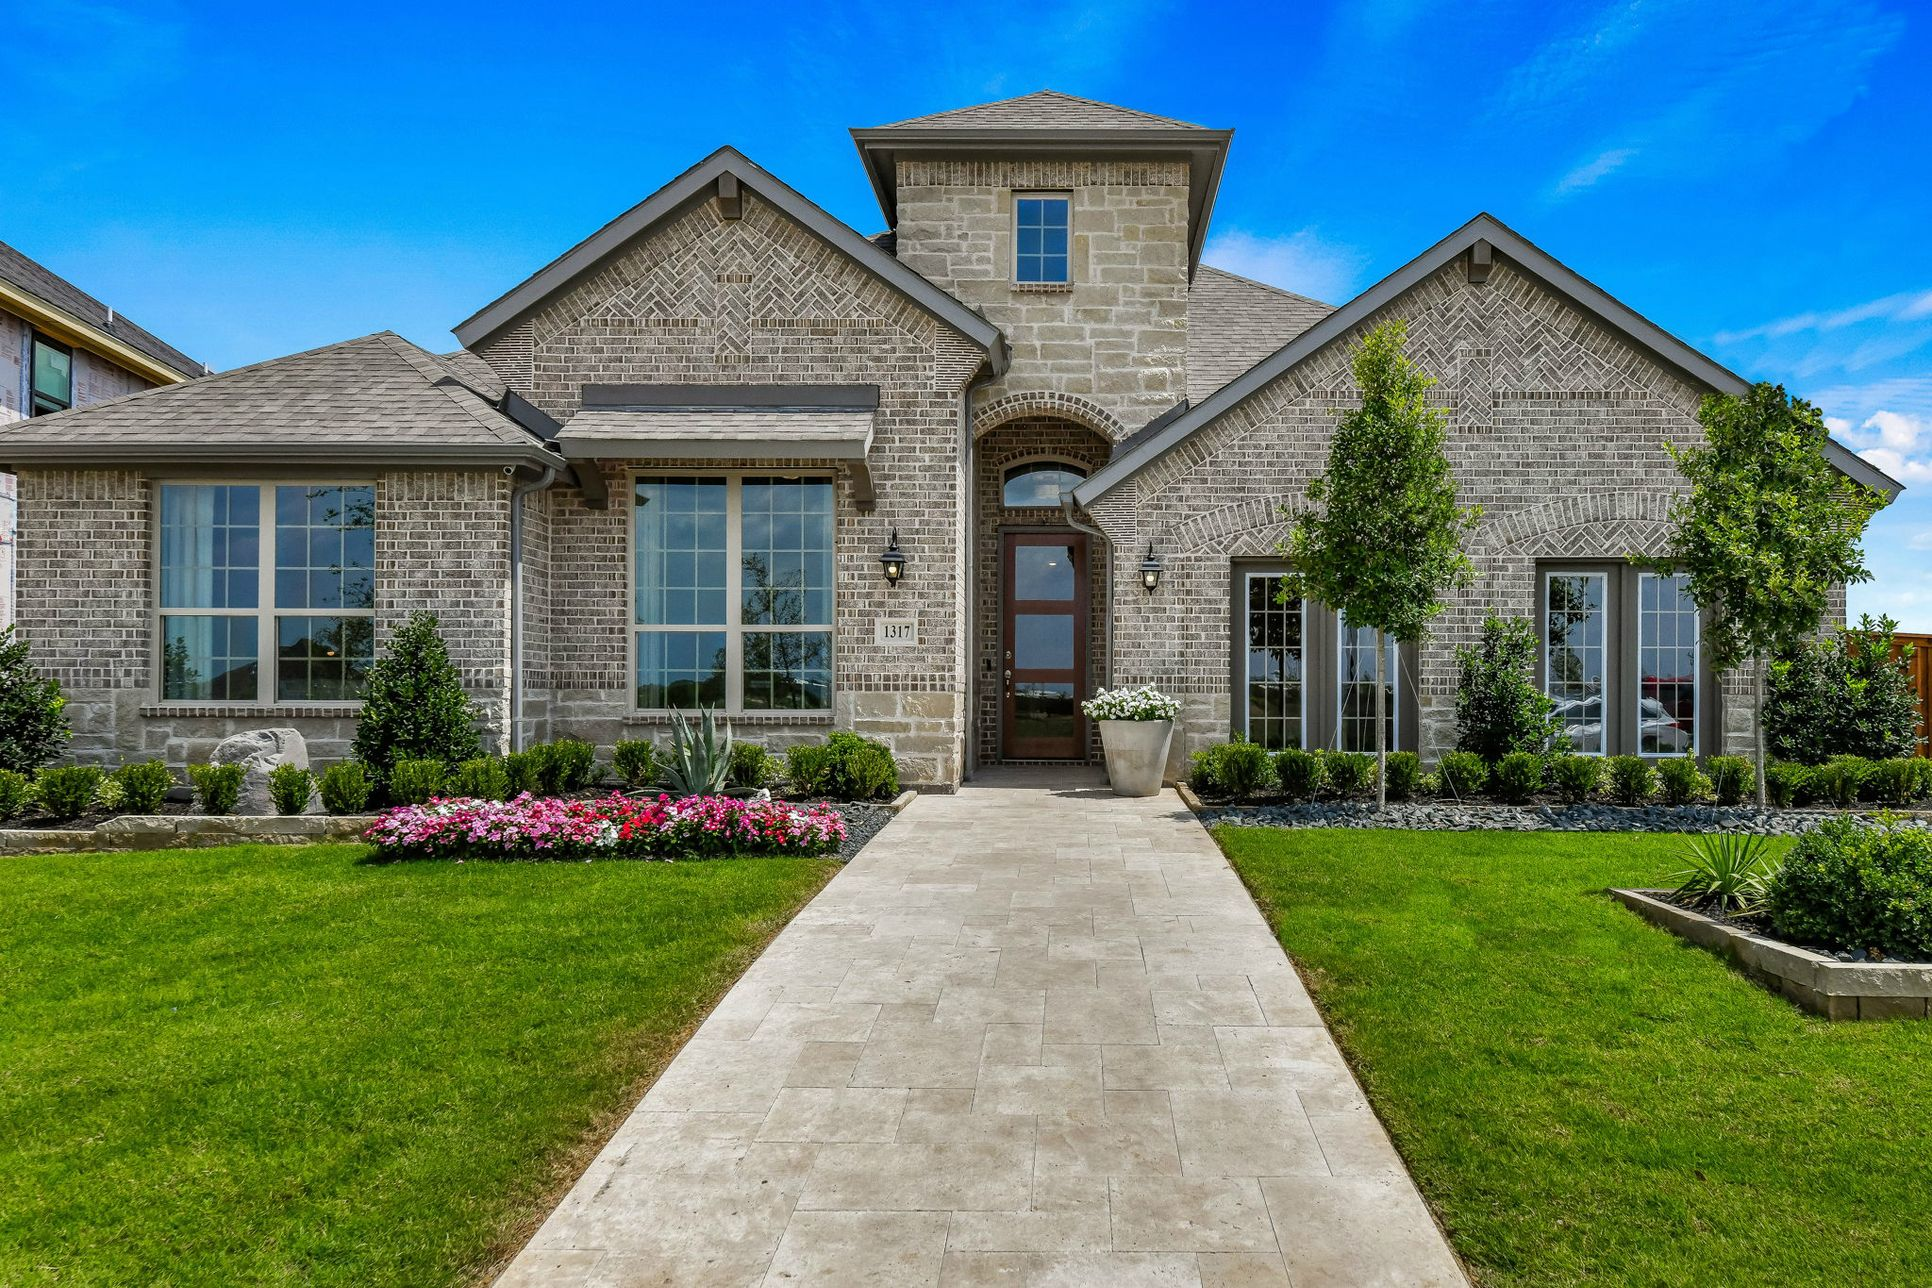 Plan 1685 Front Elevation Representative Photo by American Legend Homes